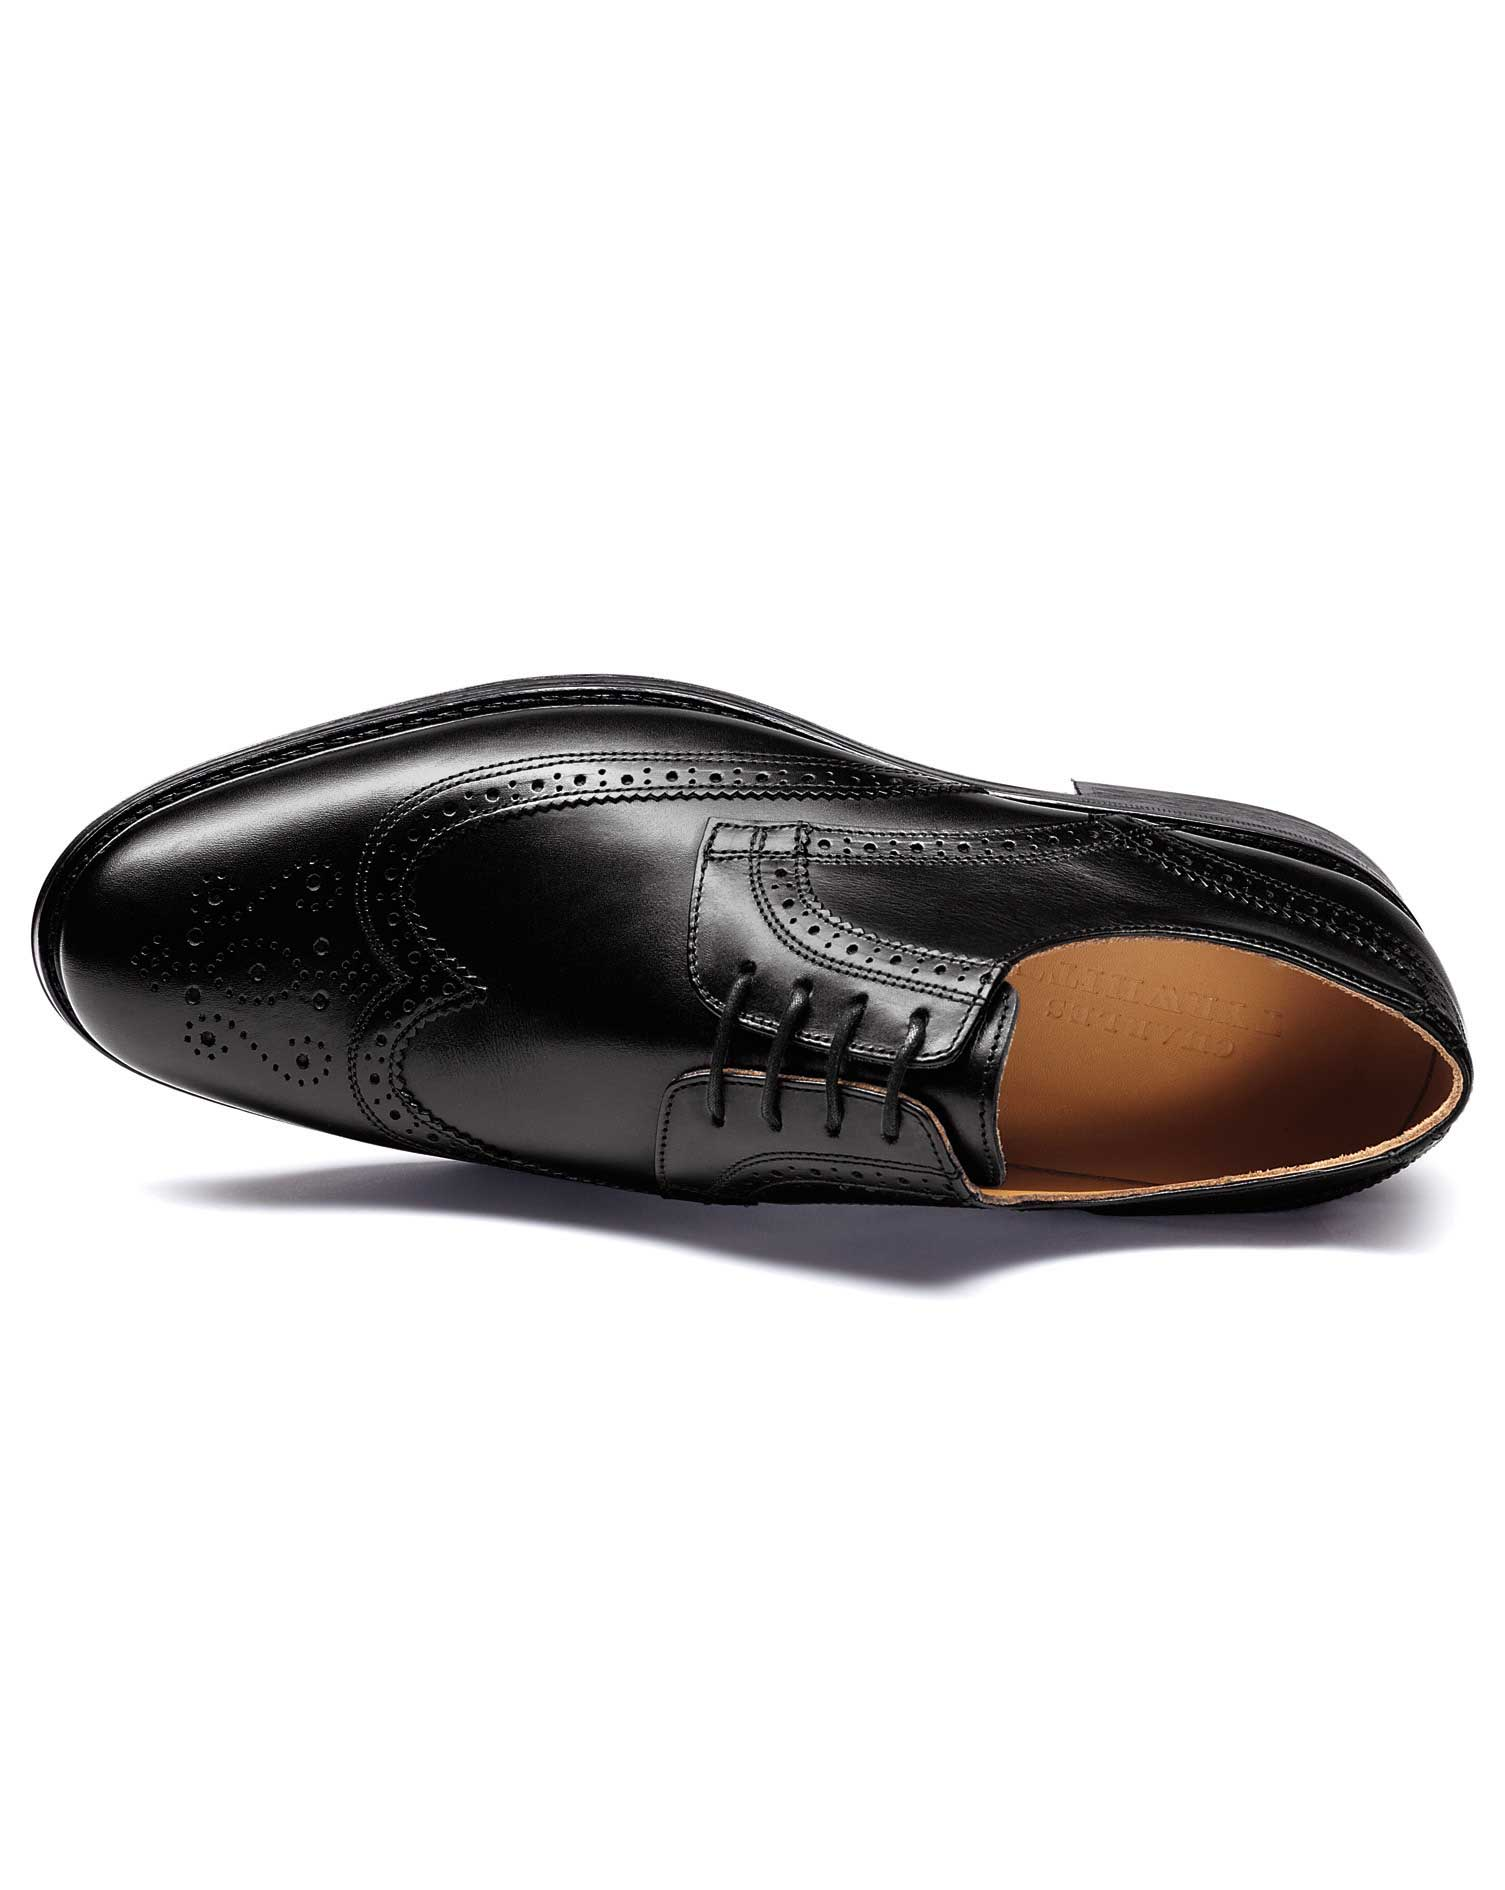 Black Halton Wing Tip Brogue Derby Shoes Size 9 R by Charles Tyrwhitt